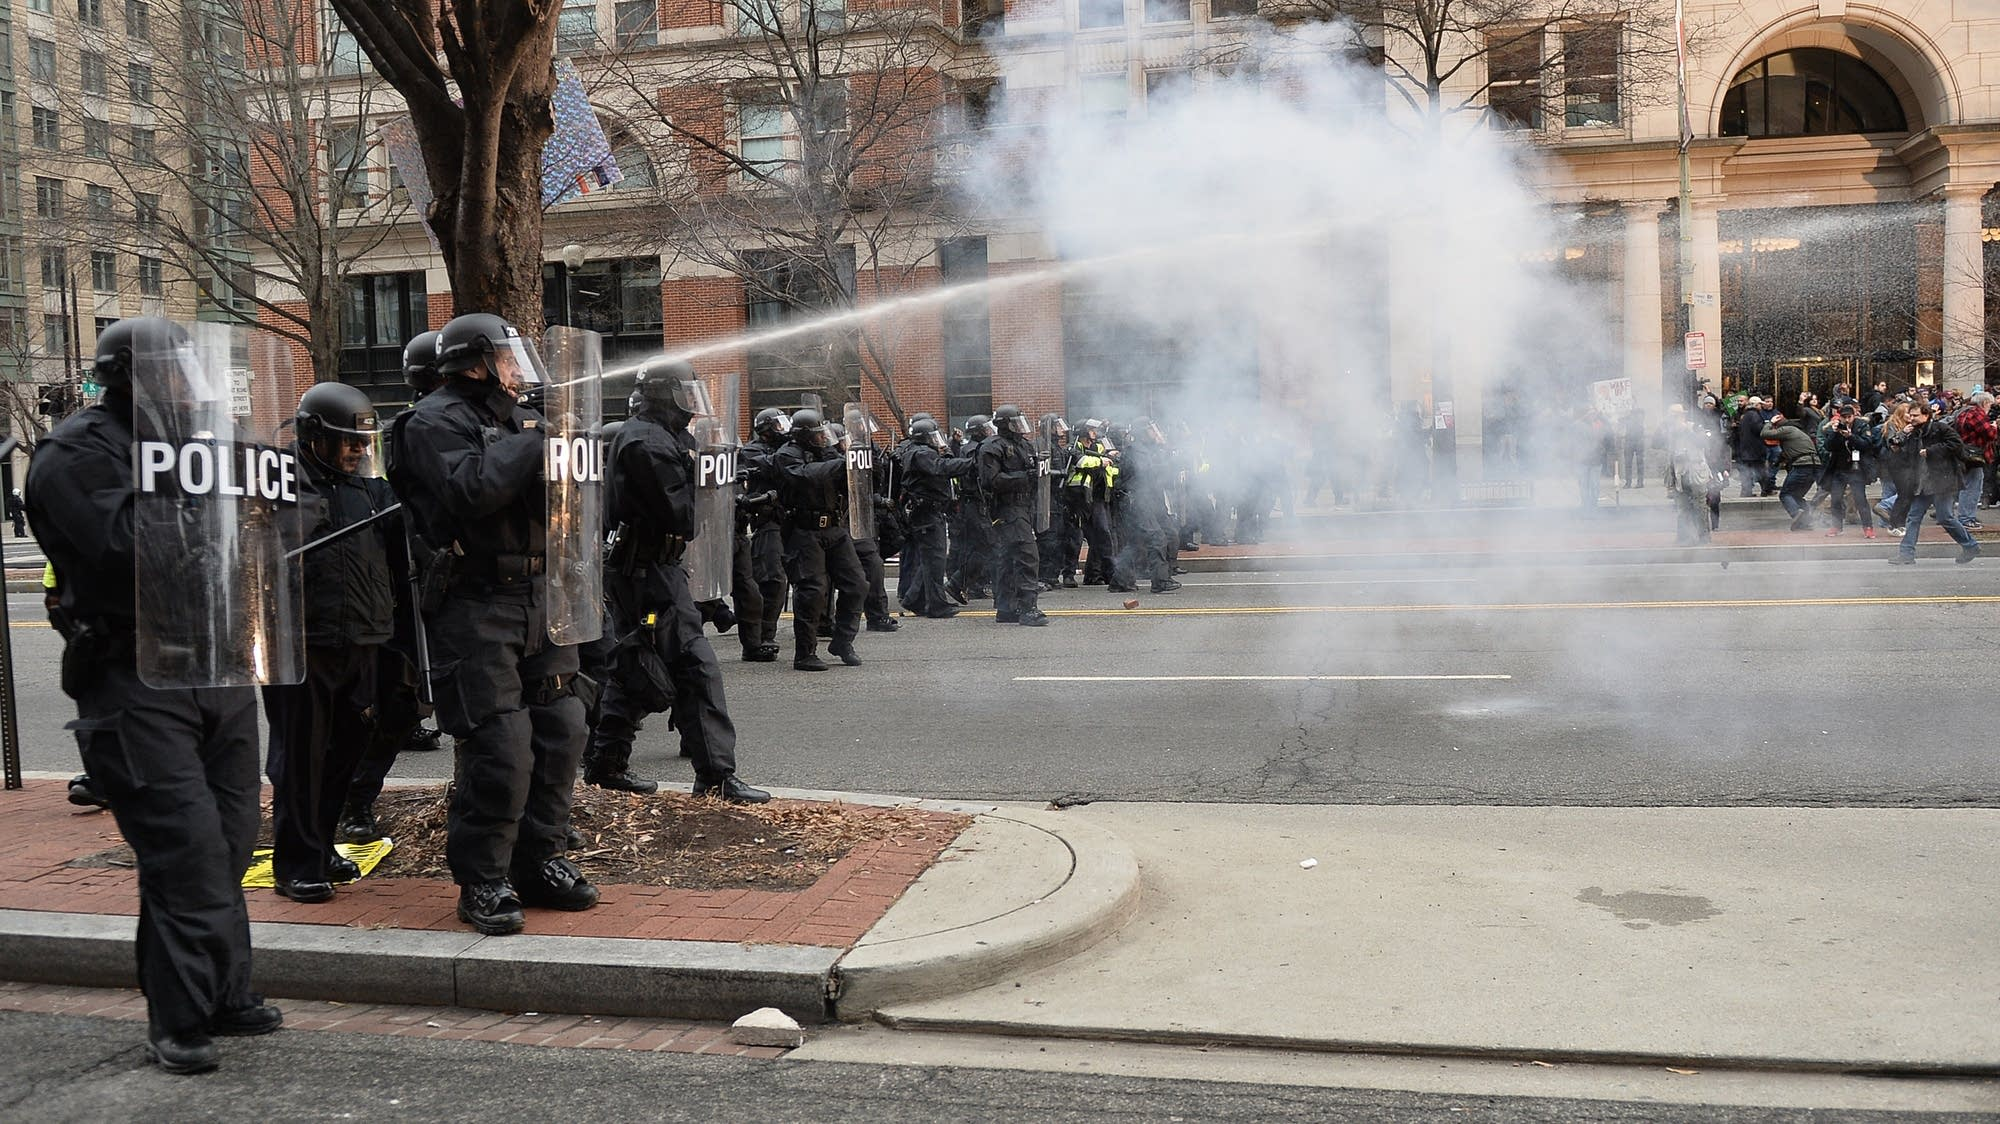 Protesters clash with police after the inauguration.